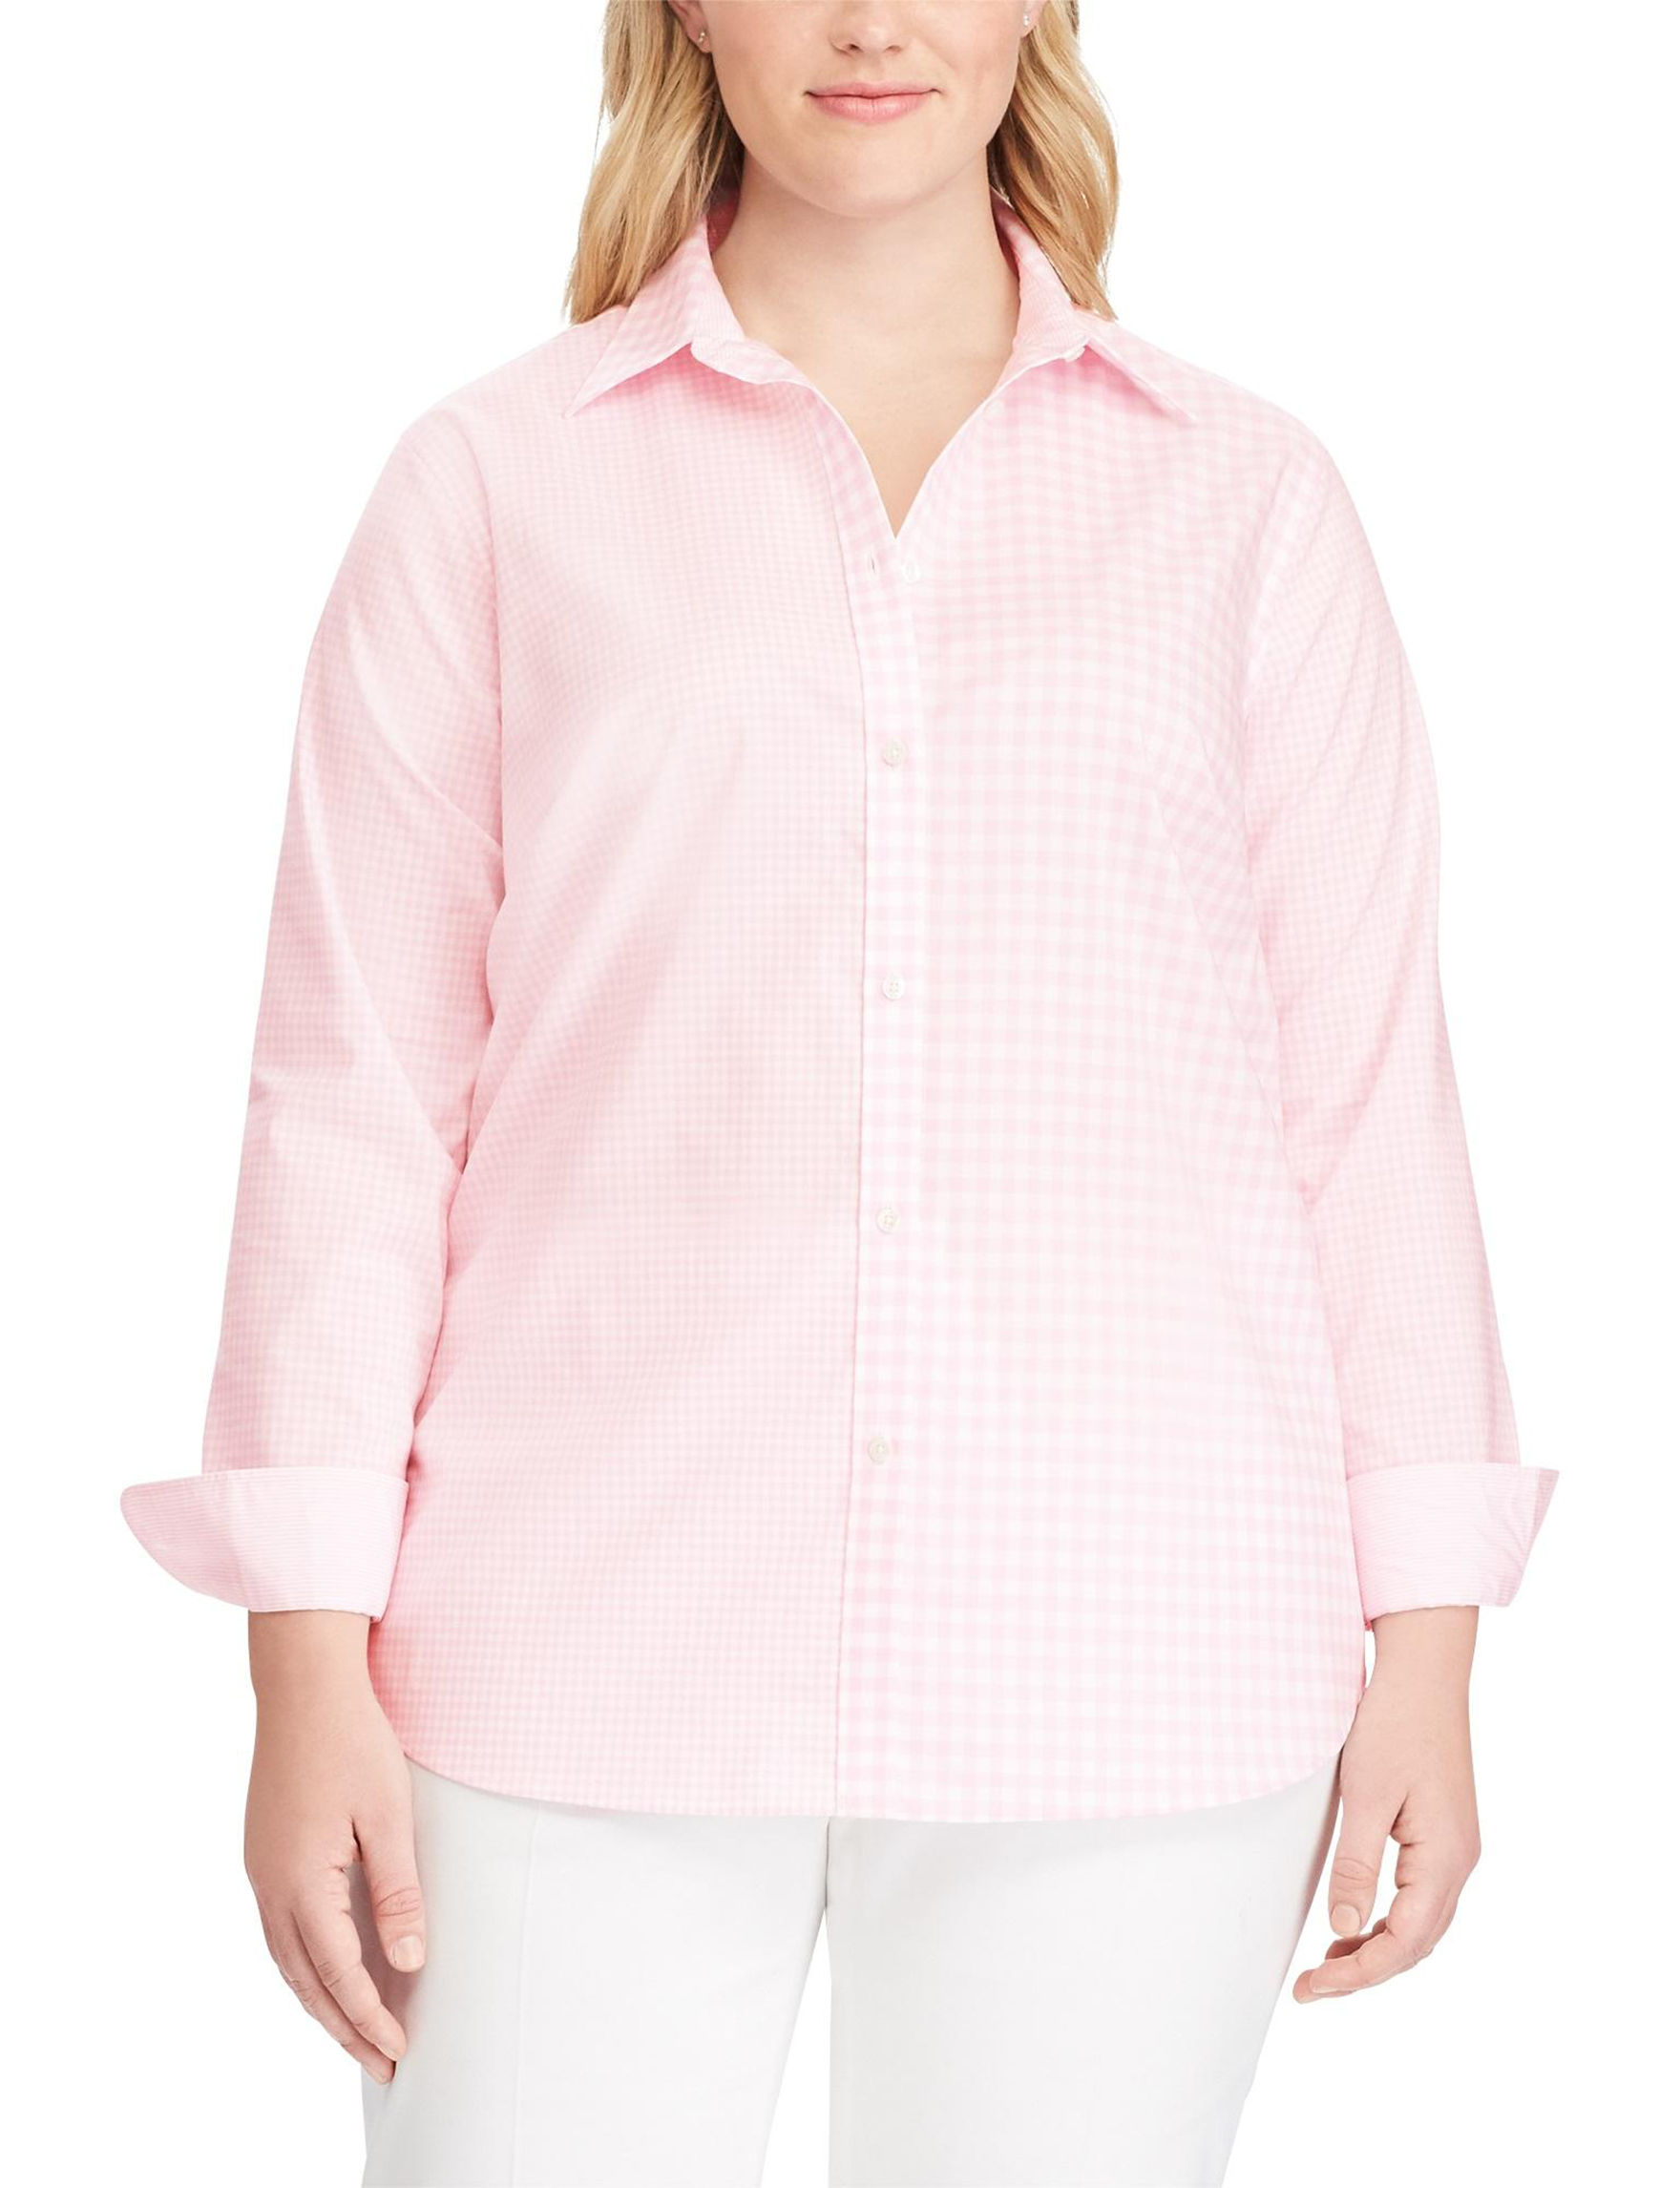 Chaps Pink / White Shirts & Blouses